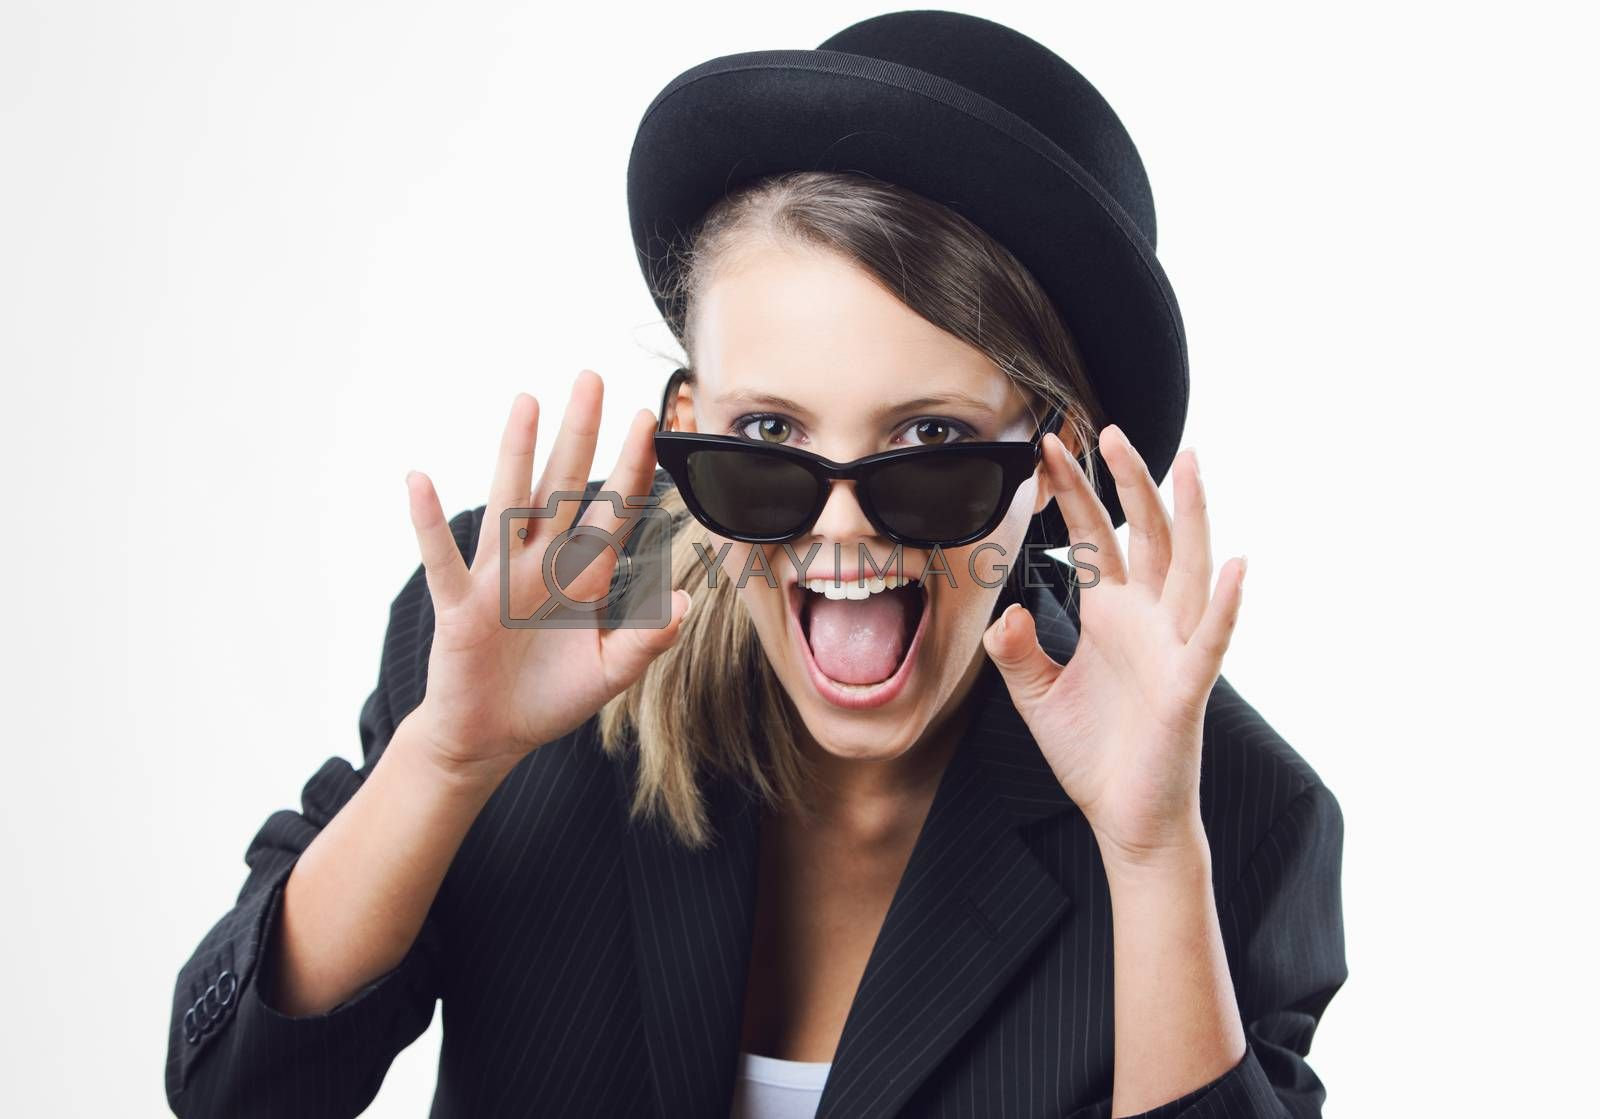 Excited blonde girl wearing sunglasses on white background